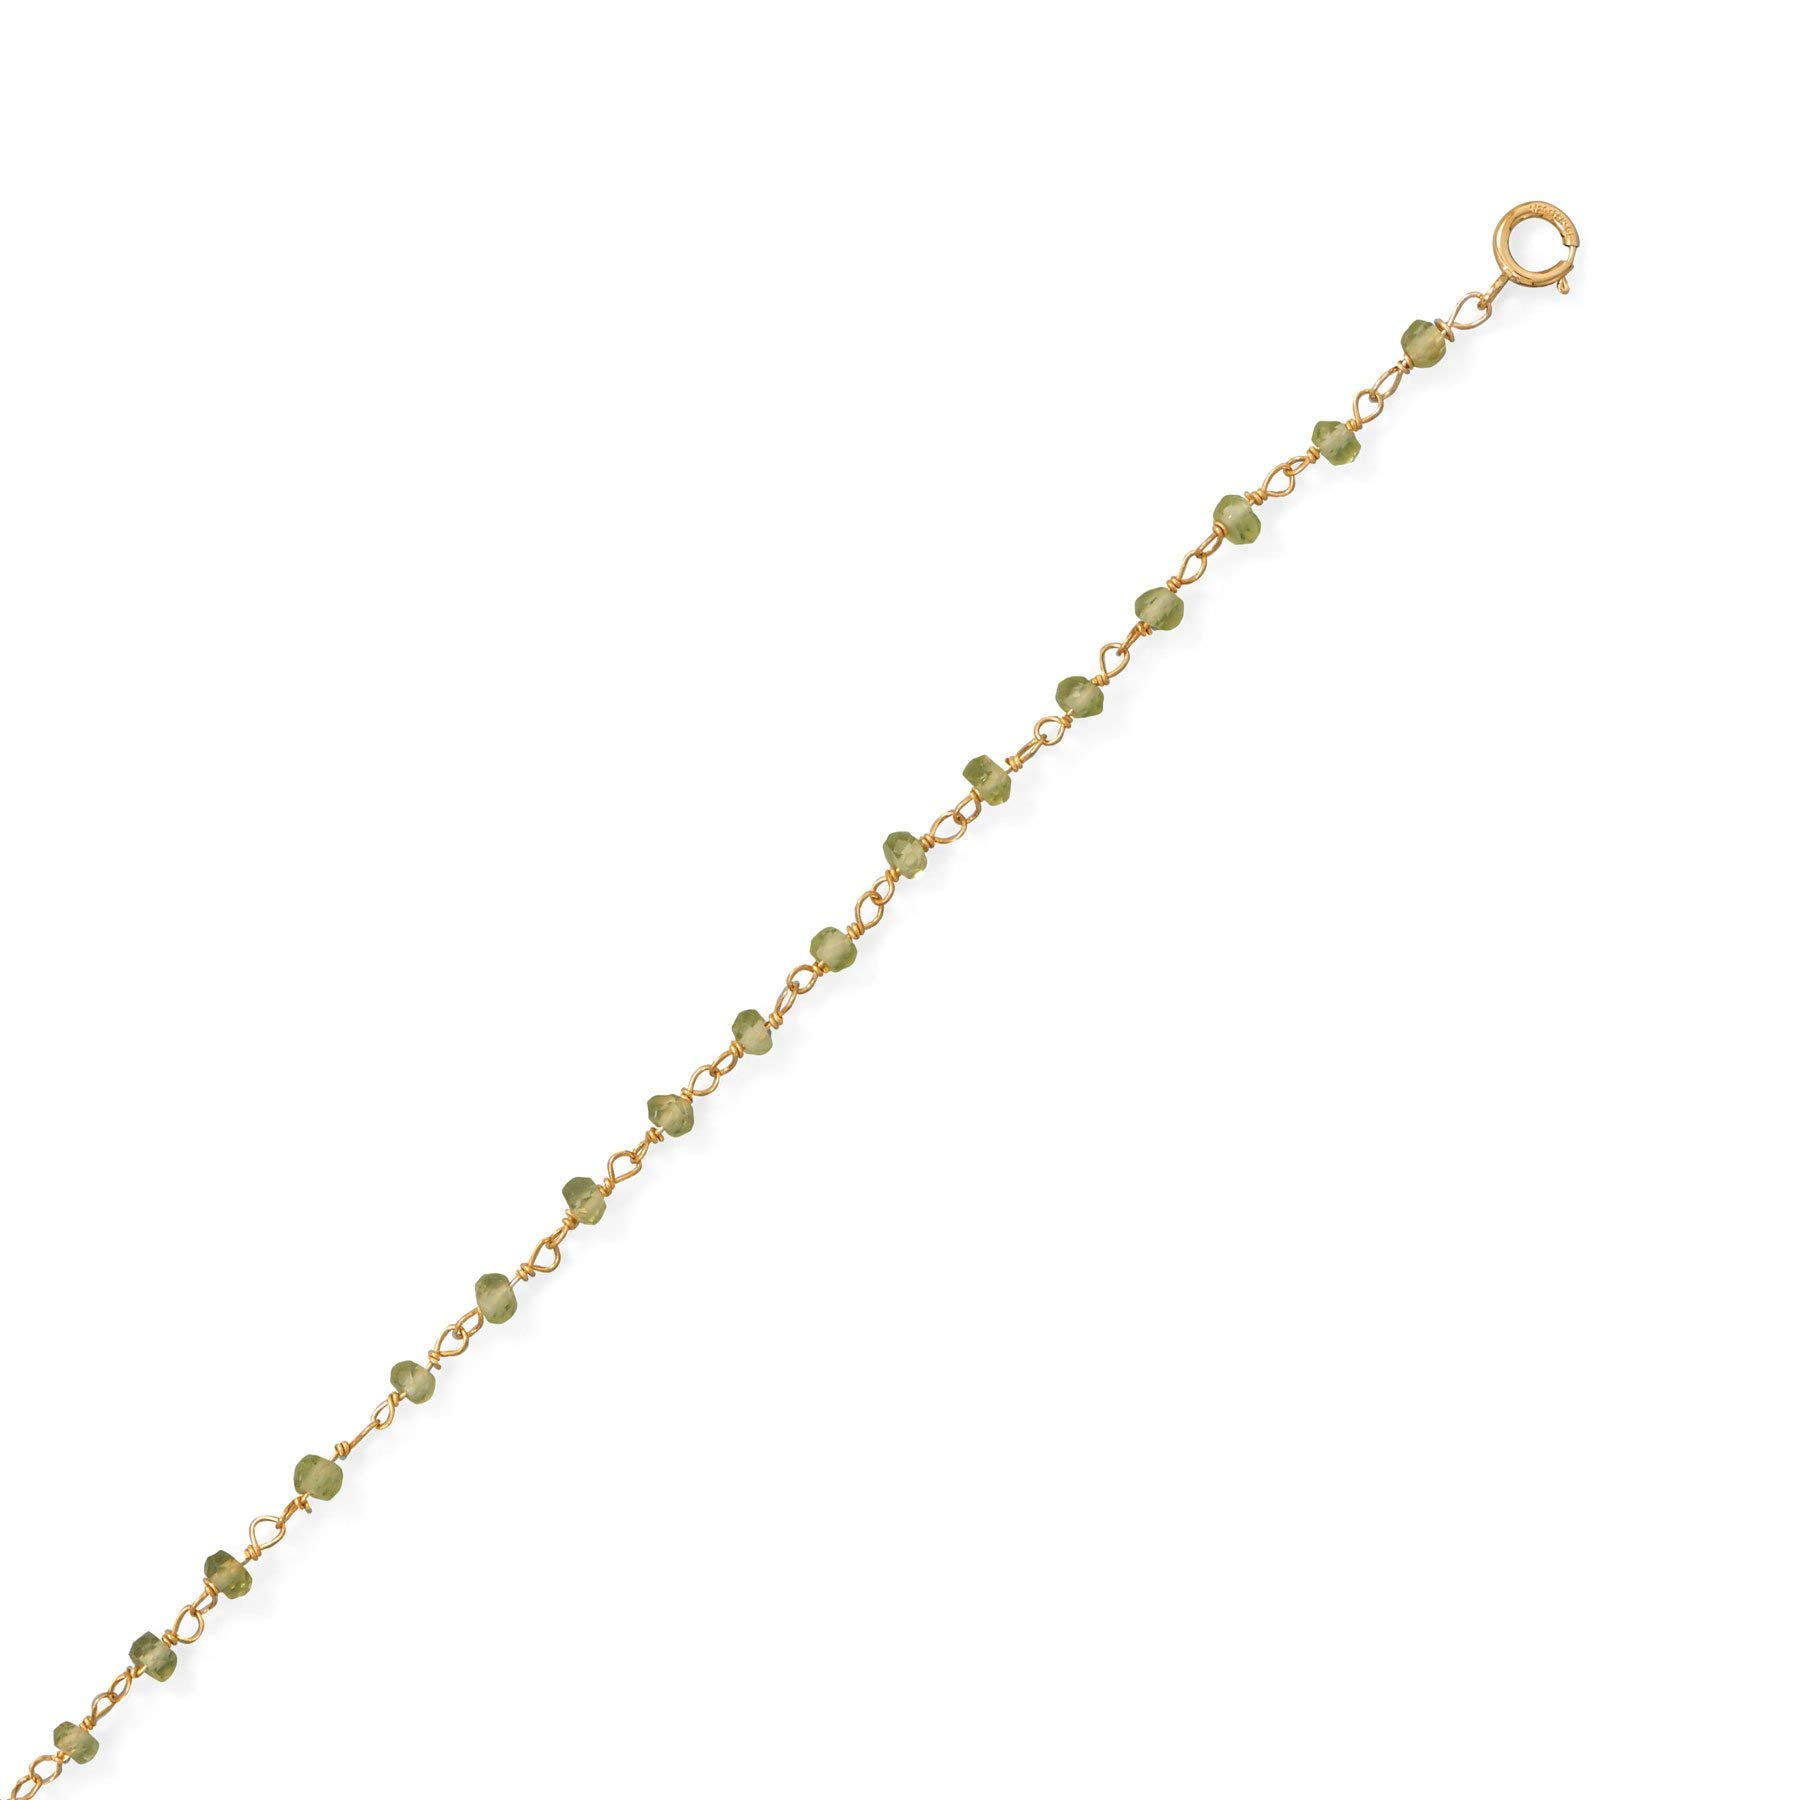 Precious Stars Jewelry 14k Gold Plated Sterling Silver Green Peridot Anklet by Precious Stars Jewelry (Image #2)